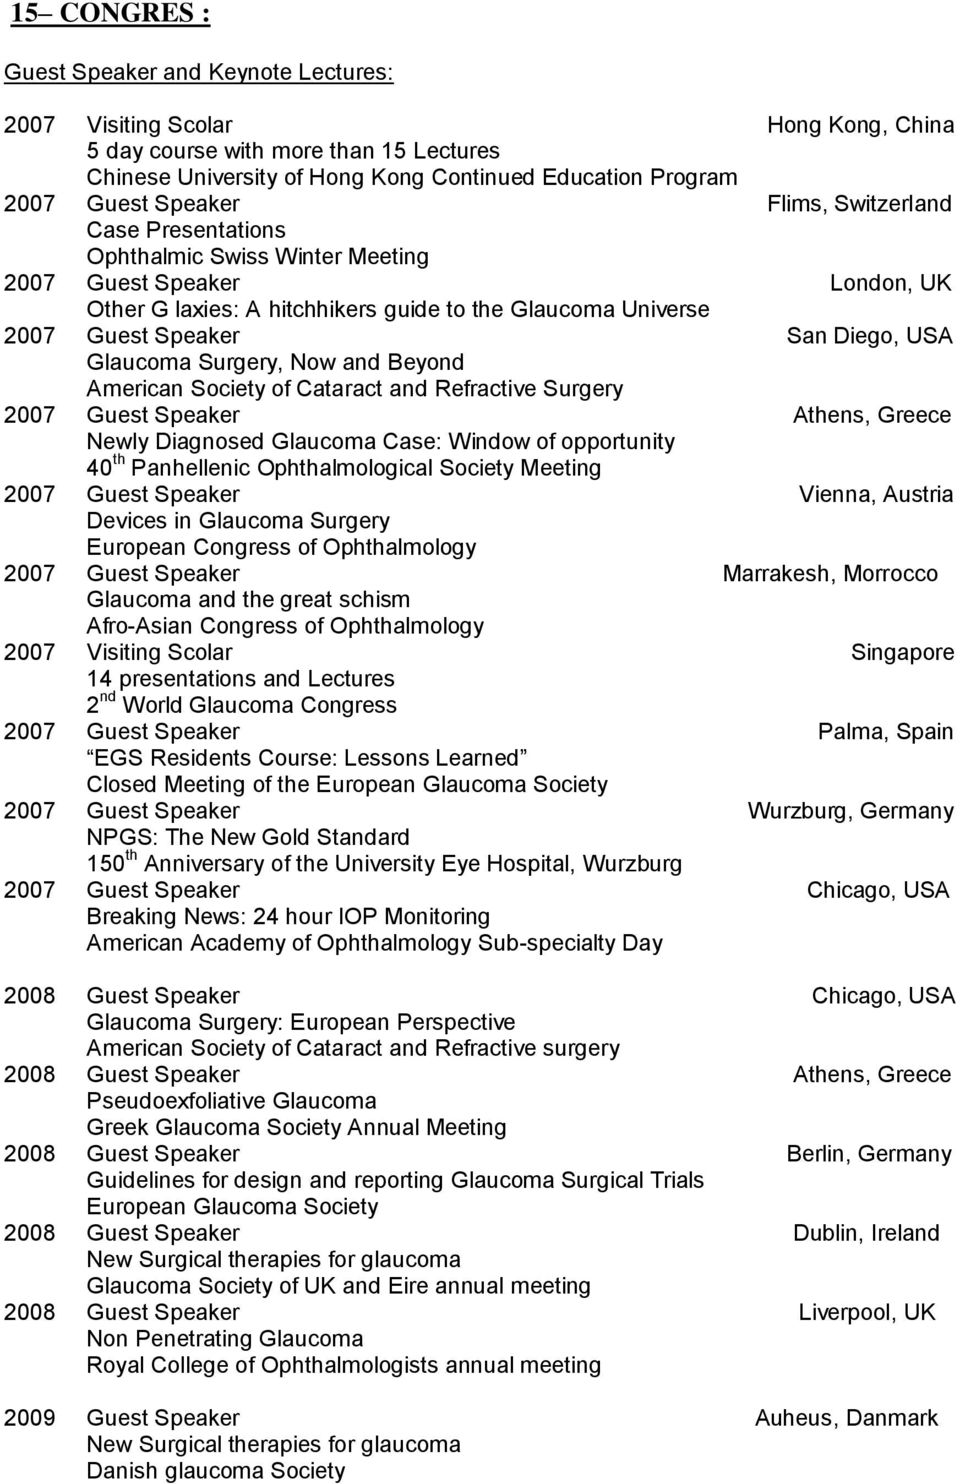 USA Glaucoma Surgery, Now and Beyond American Society of Cataract and Refractive Surgery 2007 Guest Speaker Athens, Greece Newly Diagnosed Glaucoma Case: Window of opportunity 40 th Panhellenic